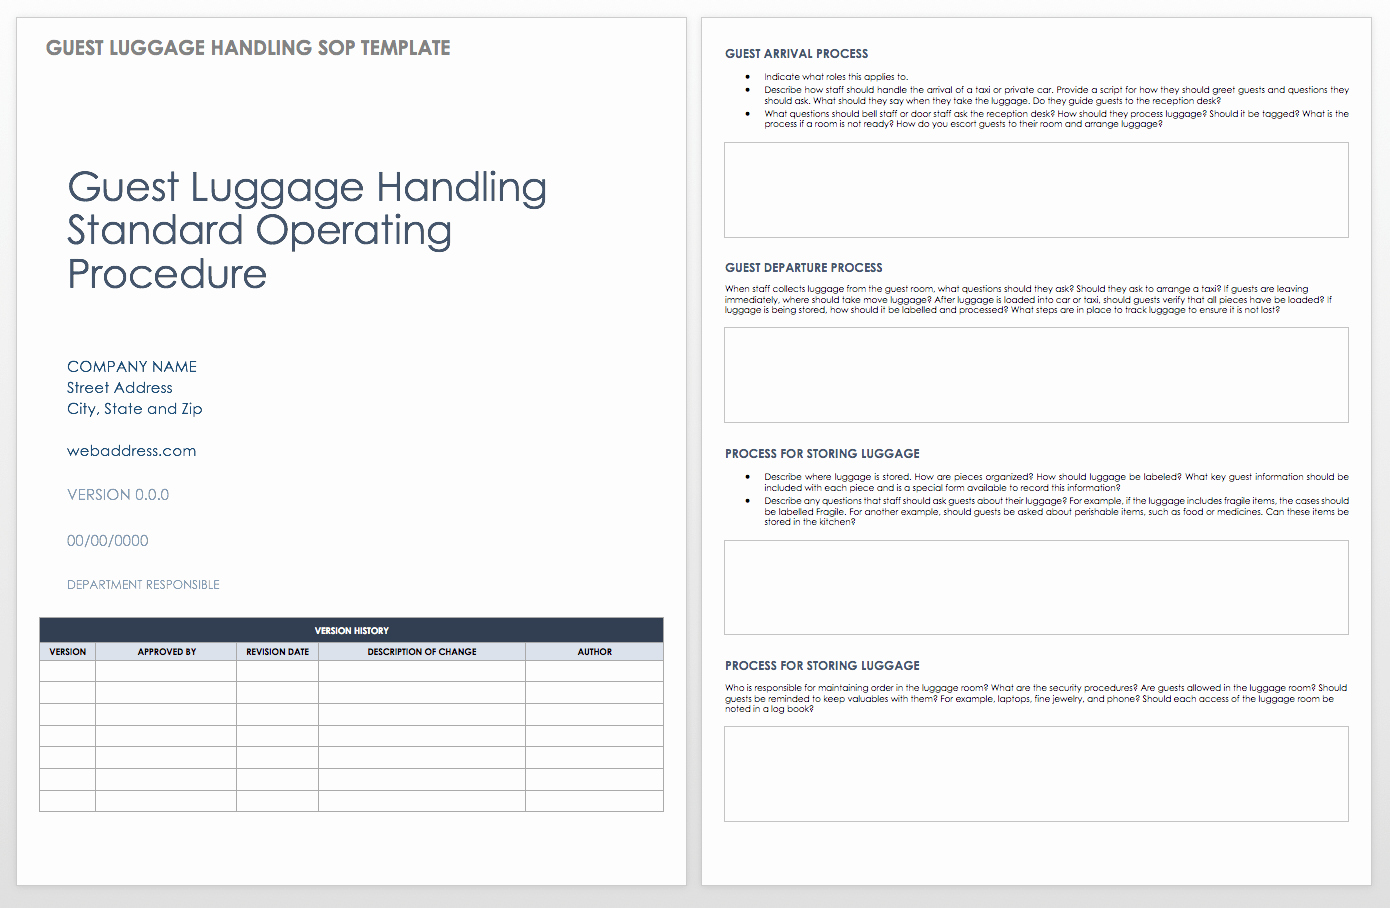 Template for Standard Operating Procedures Luxury Standard Operating Procedures Templates